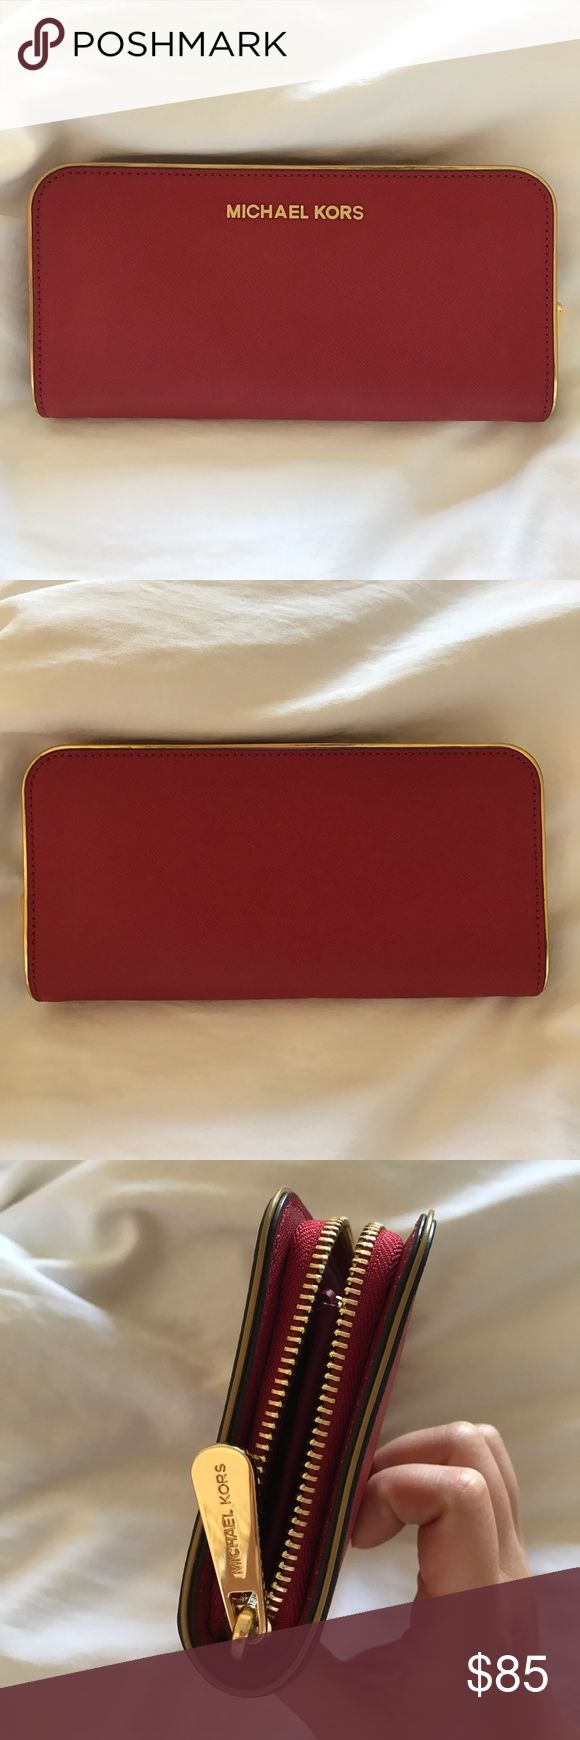 NWOT MICHAEL KORS CONTINENTAL WALLET IN RED A nwot Michael Kors continental wallet in red with gold metal!! 2 bill compartments, 8 card slots, and a zip inside for coins! Saffiano leather! MICHAEL Michael Kors Bags Wallets